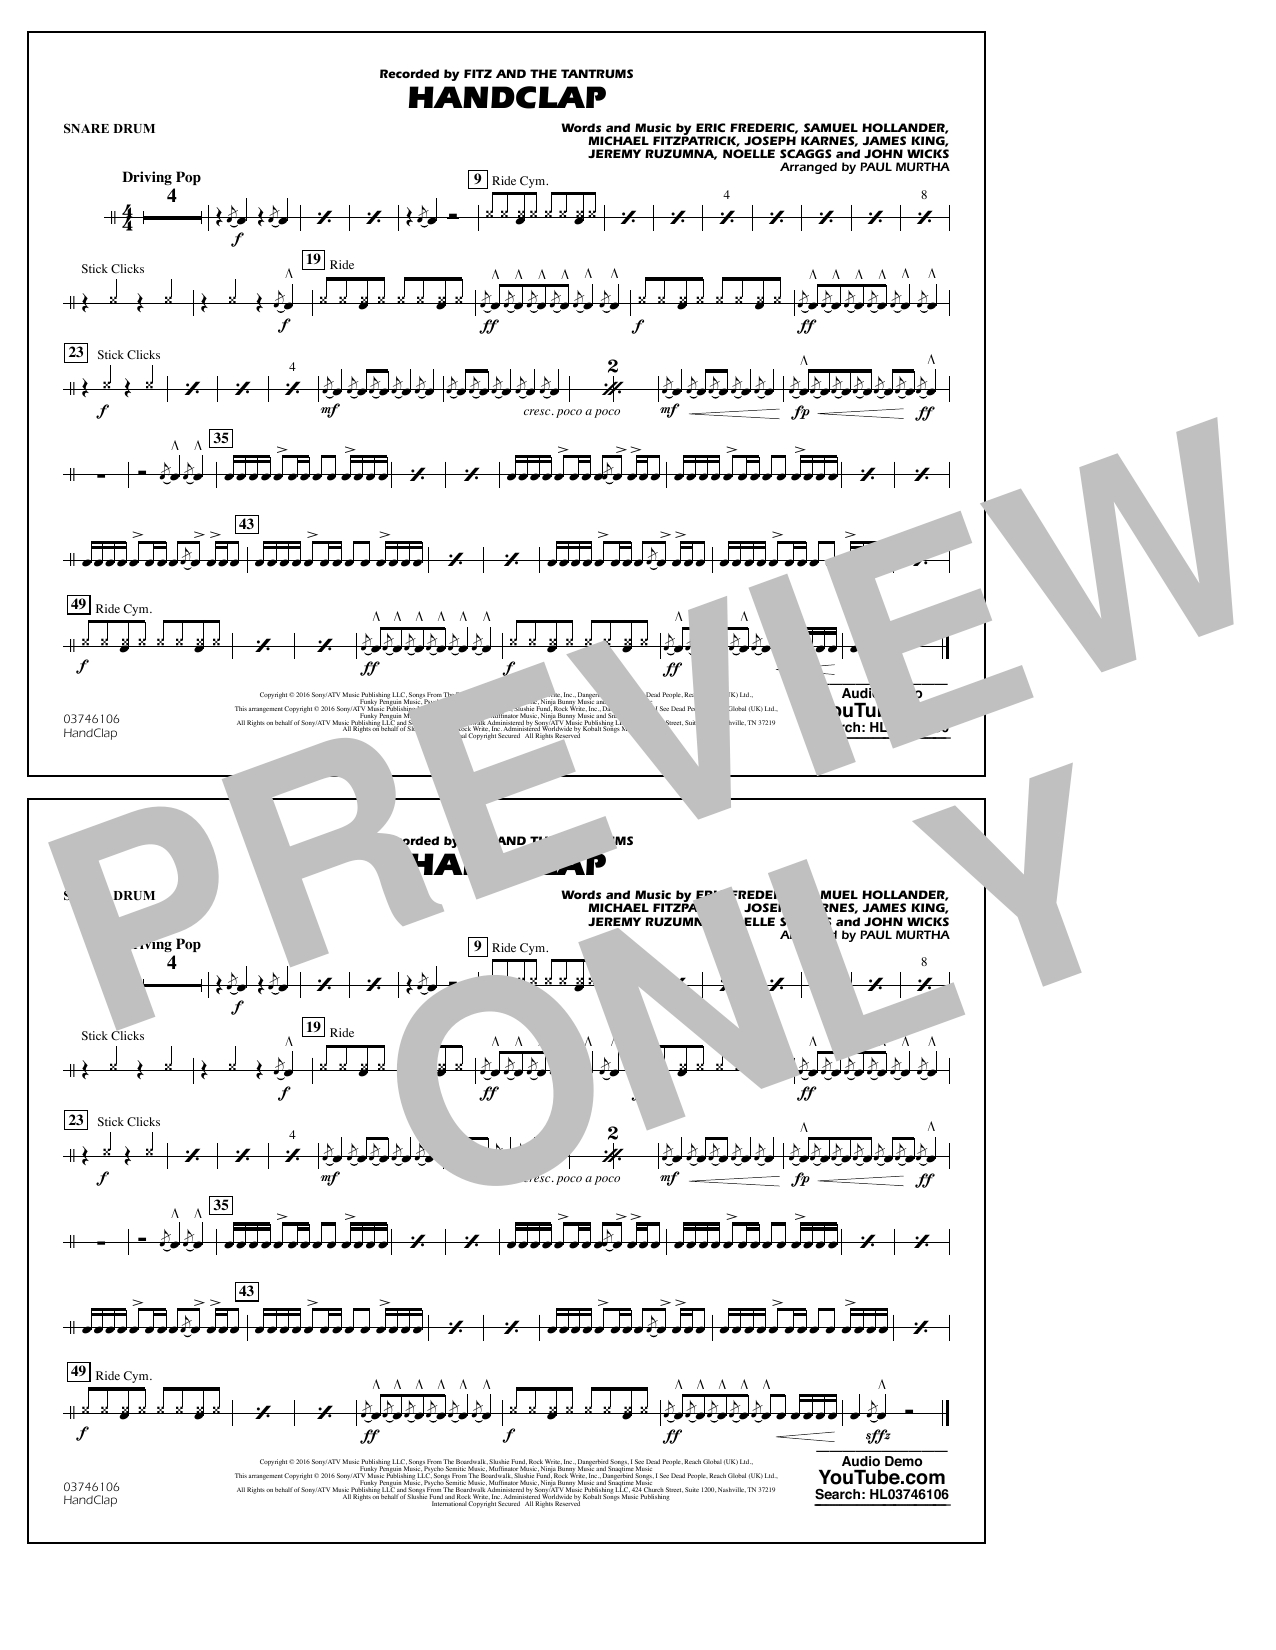 HandClap - Snare Drum Sheet Music